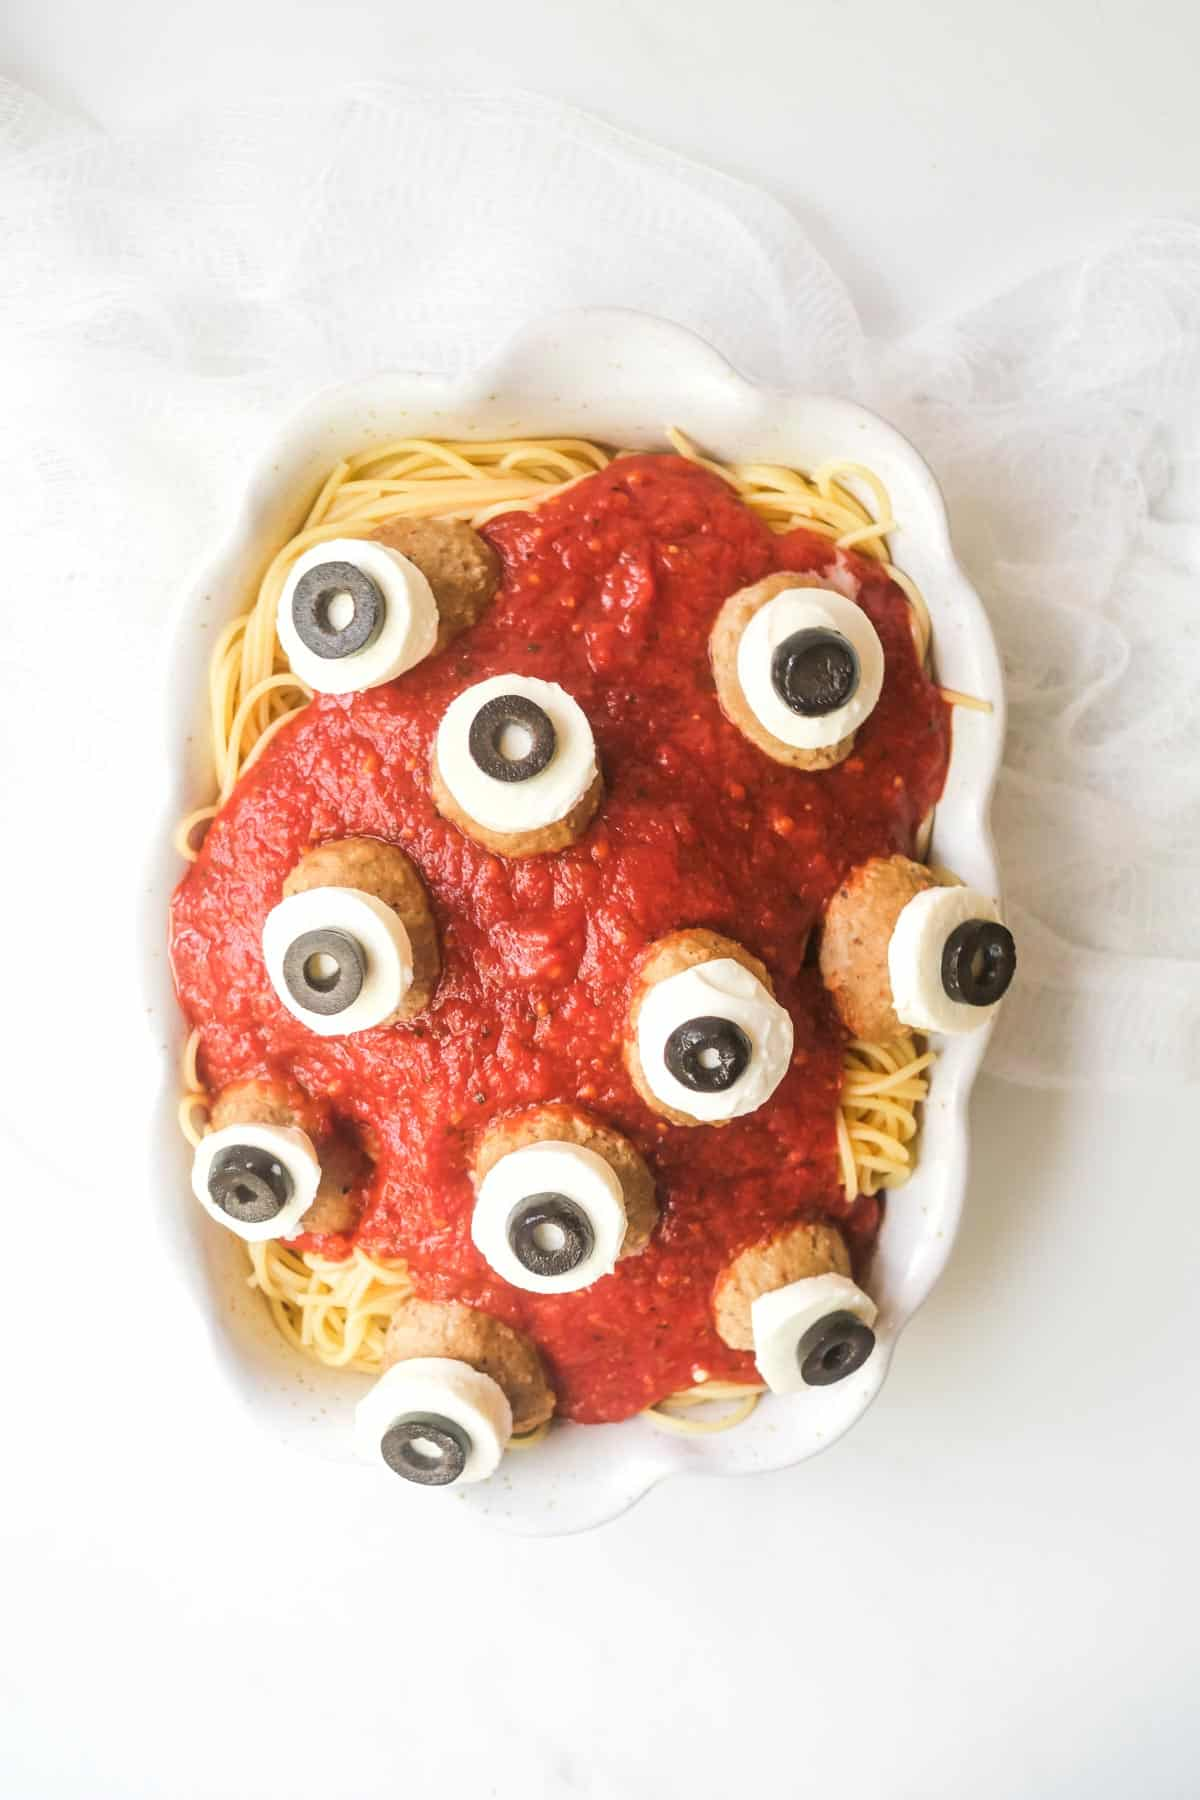 a serving platter filled with halloween spaghetti and meatballs